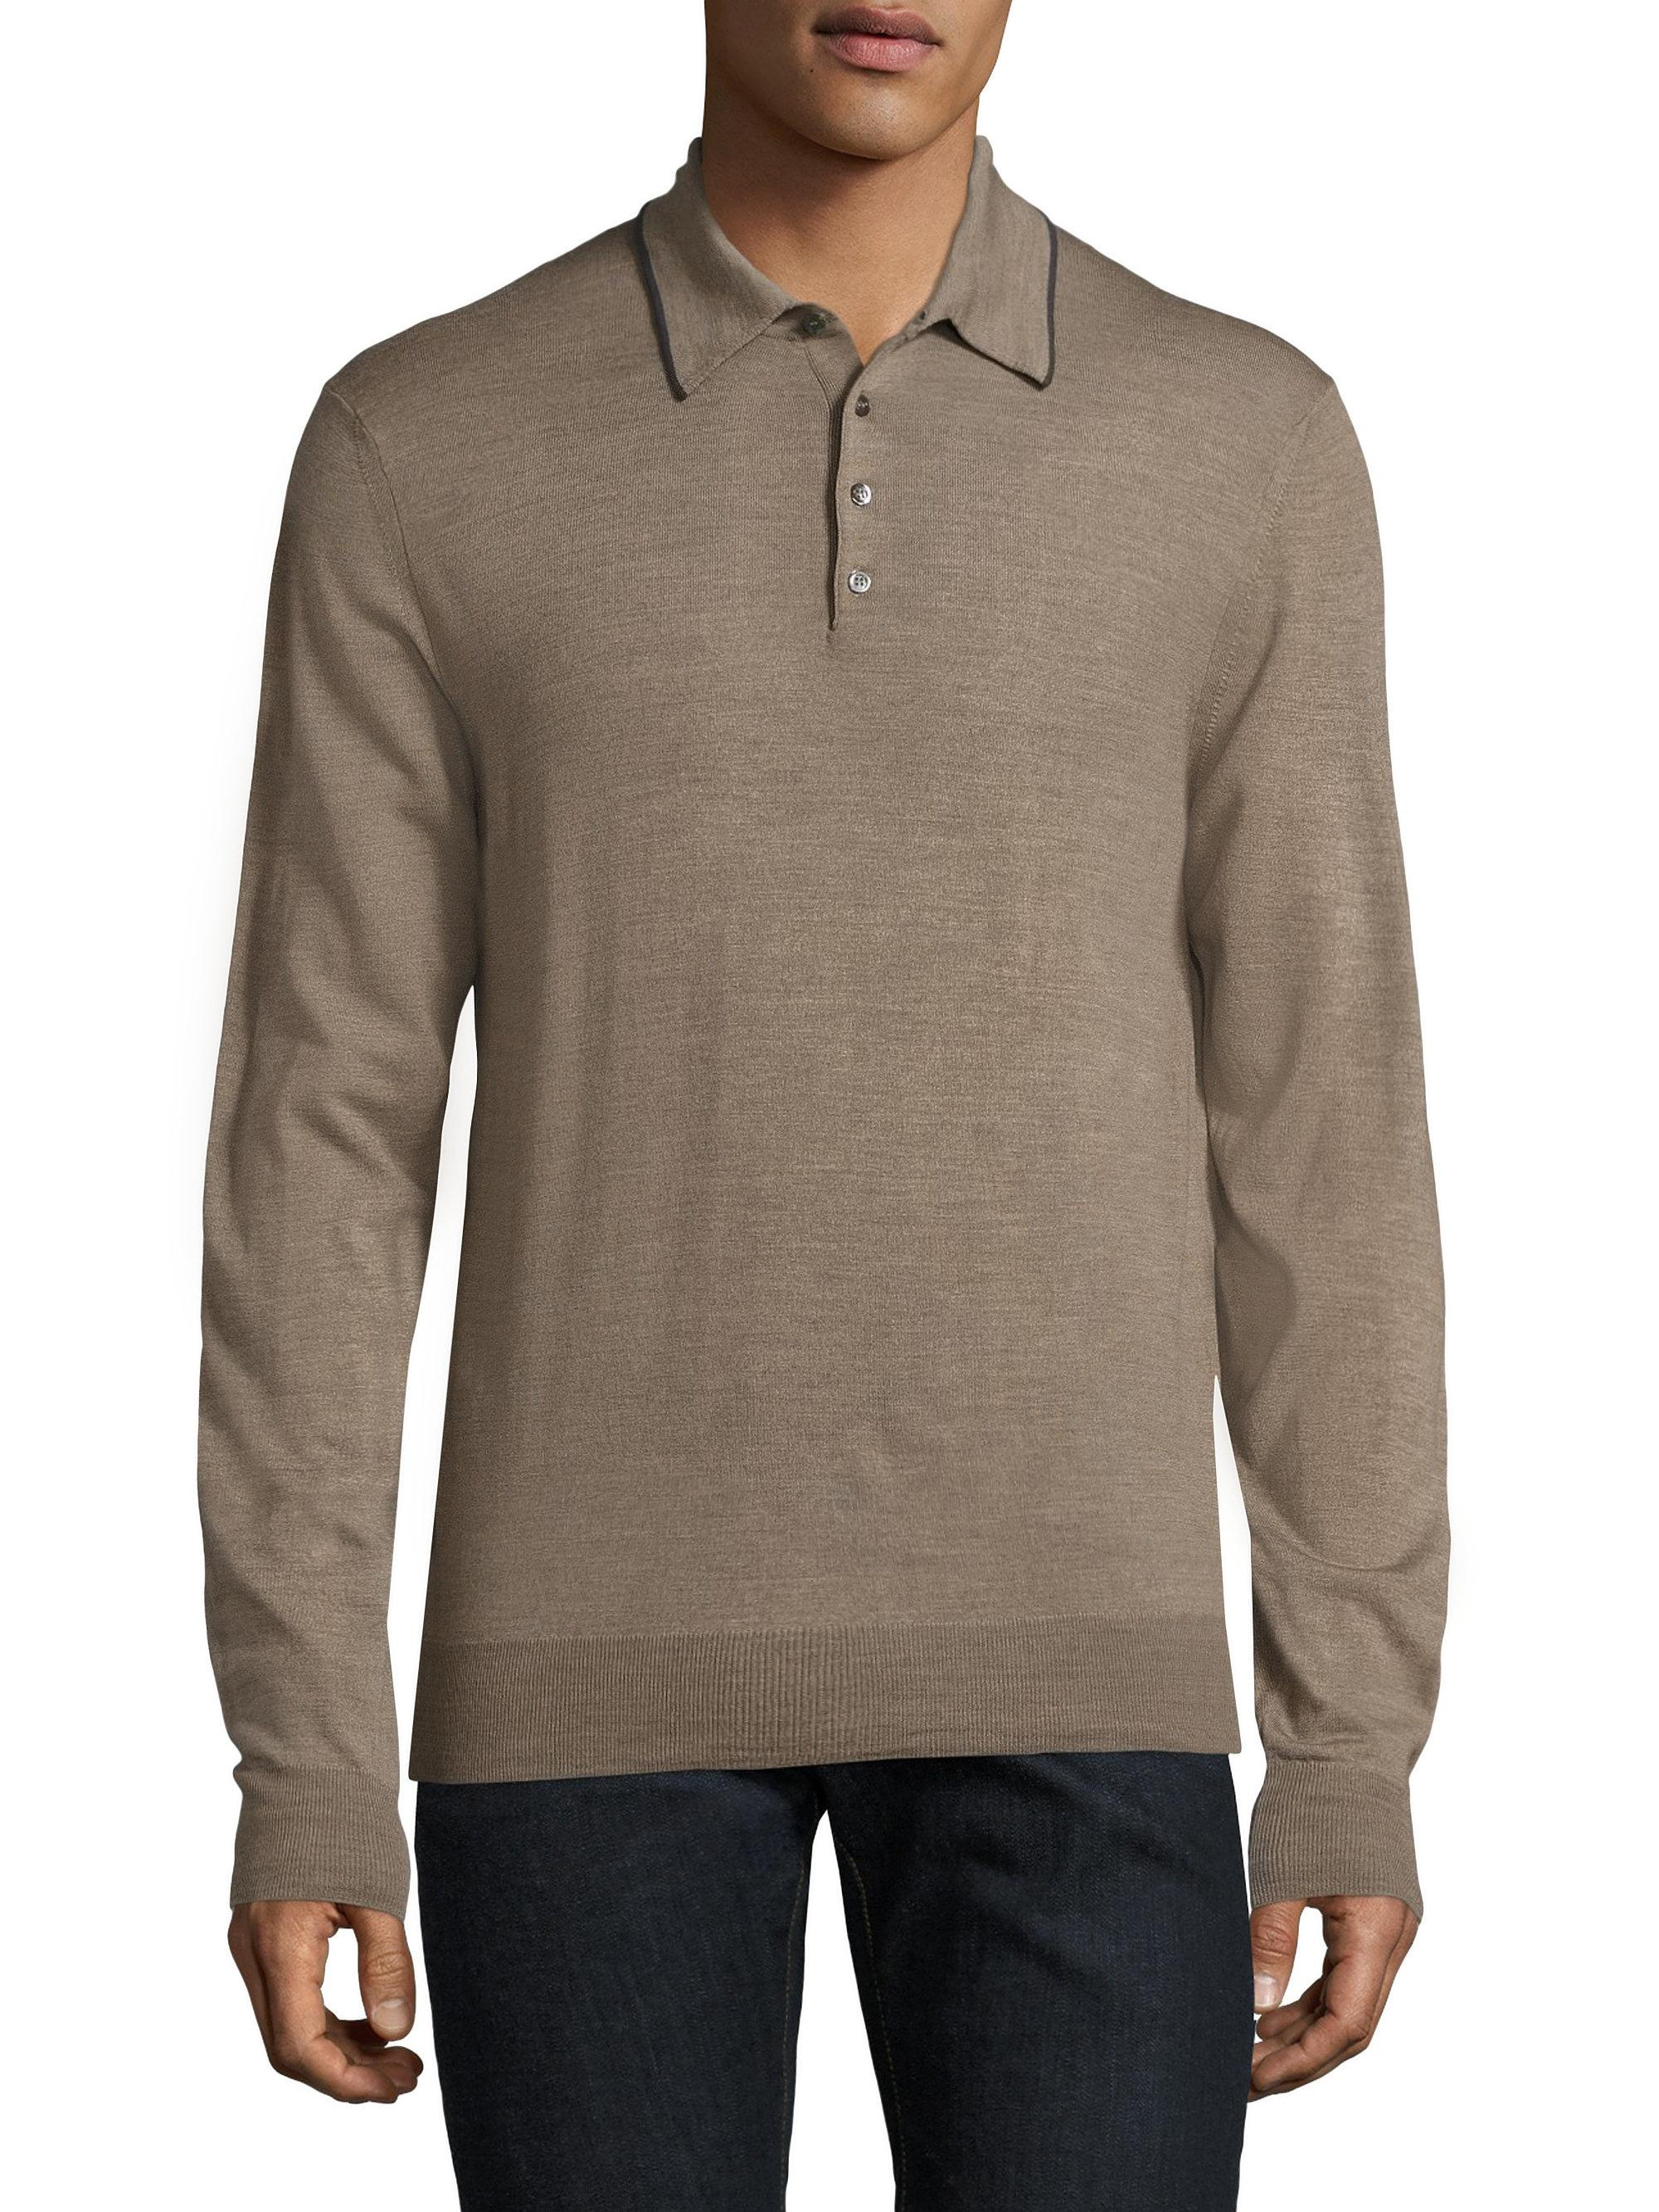 Saks fifth avenue merino wool long sleeve polo in natural for Long sleeve wool polo shirts